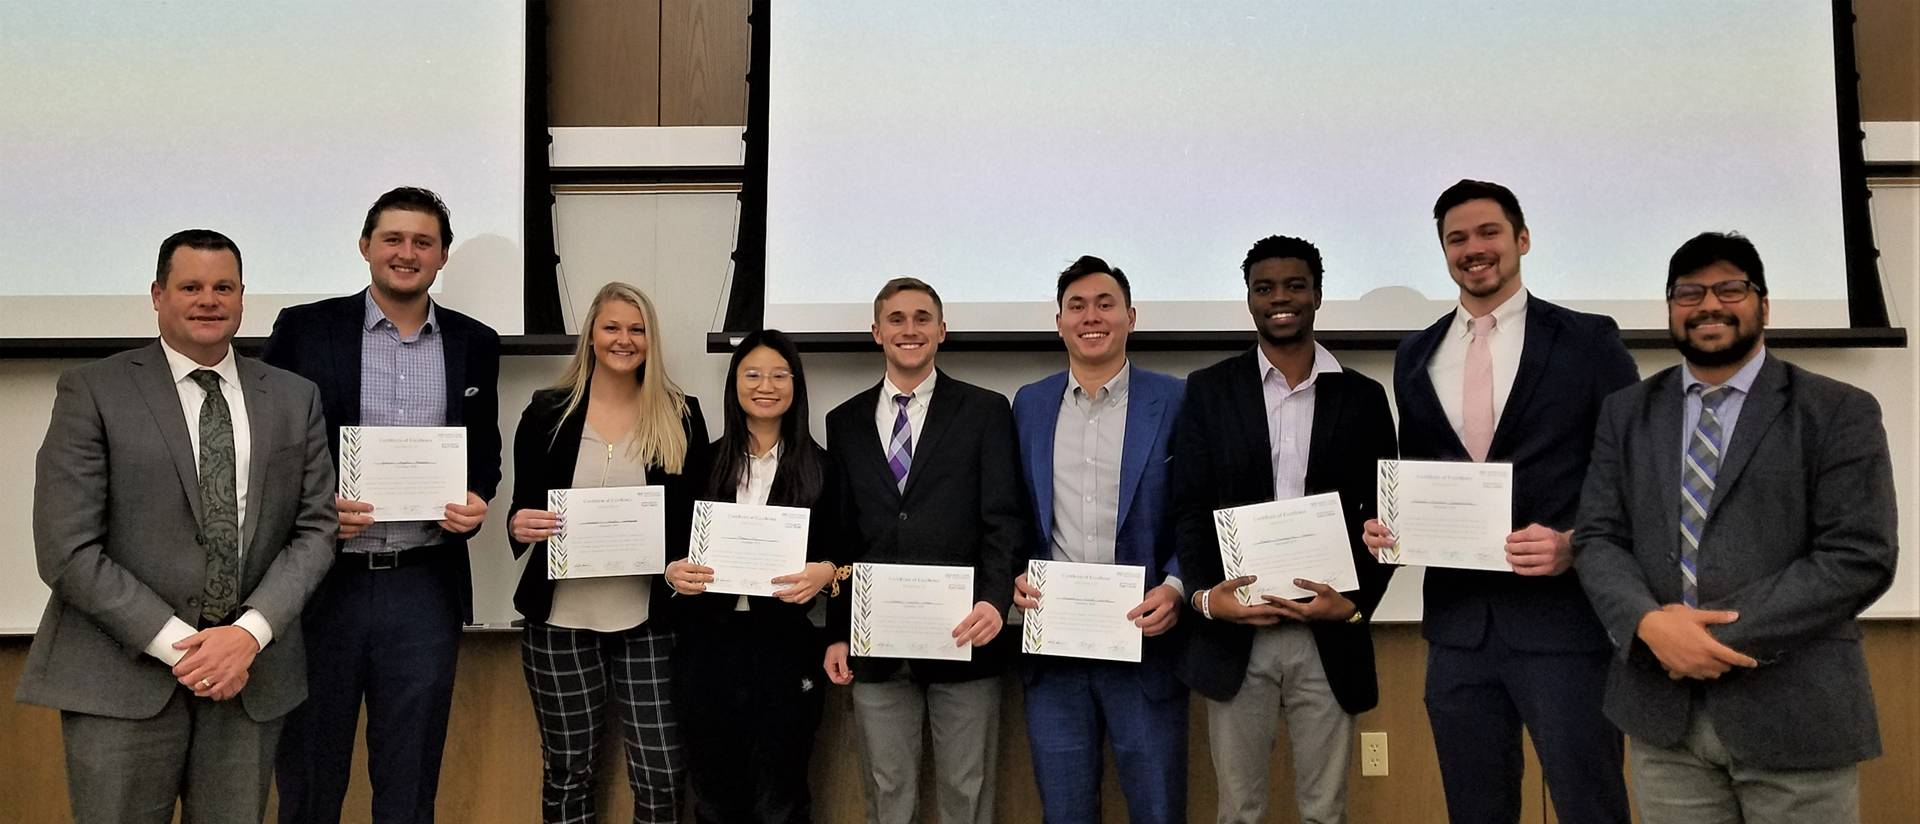 MKTG 438 Fall 2019 2nd Place team